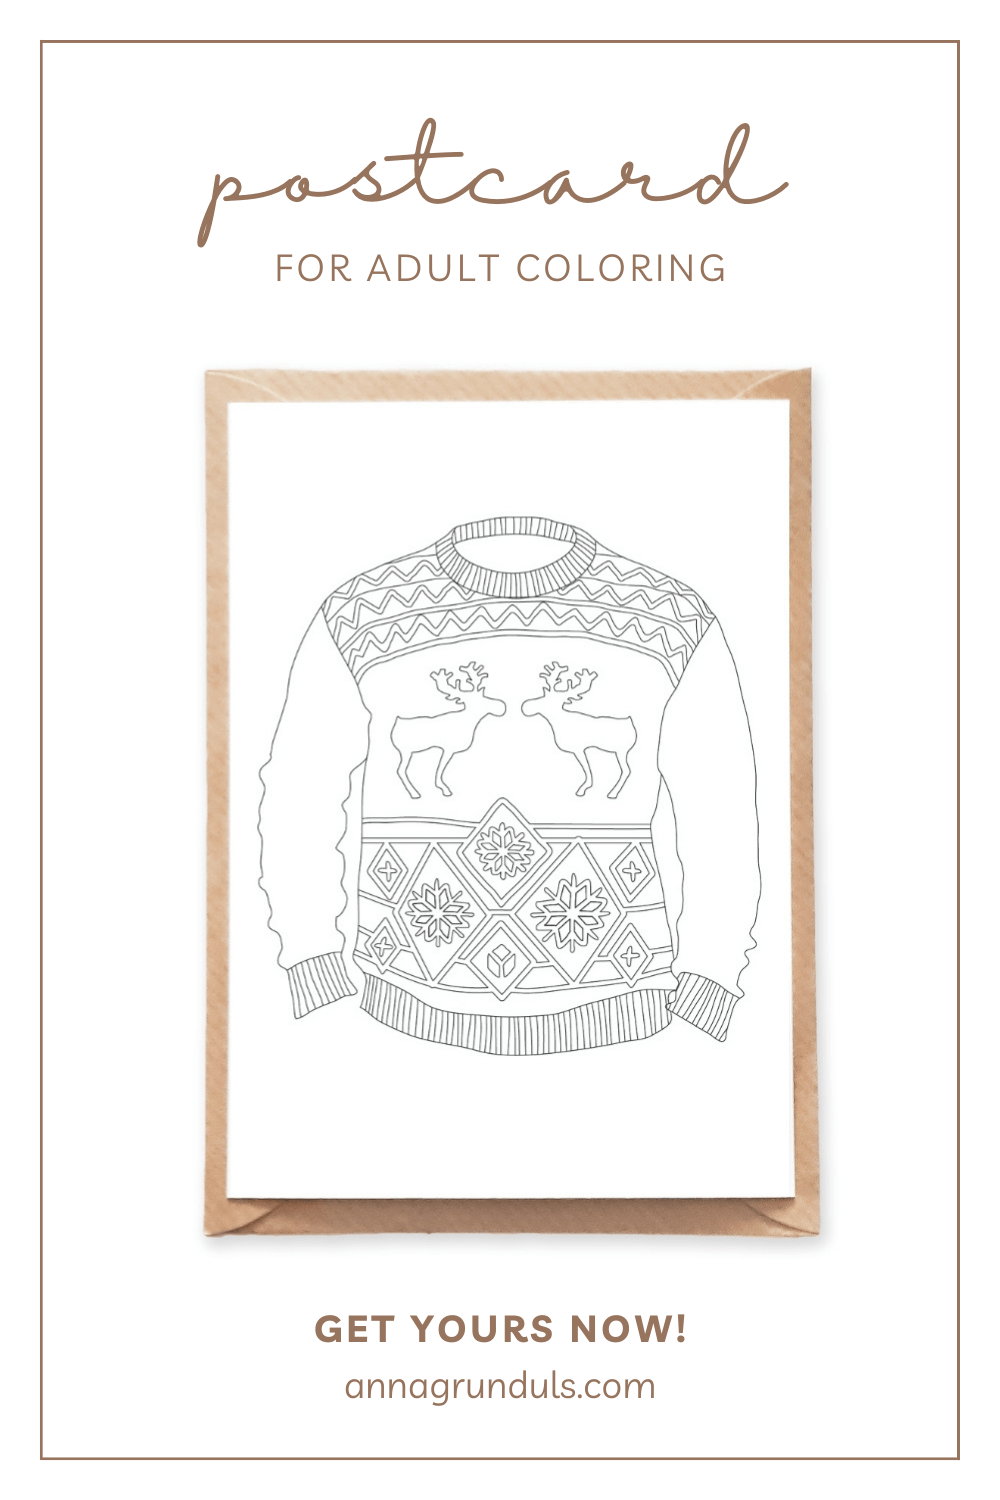 christmas sweater postcard for adult coloring pinterest pin